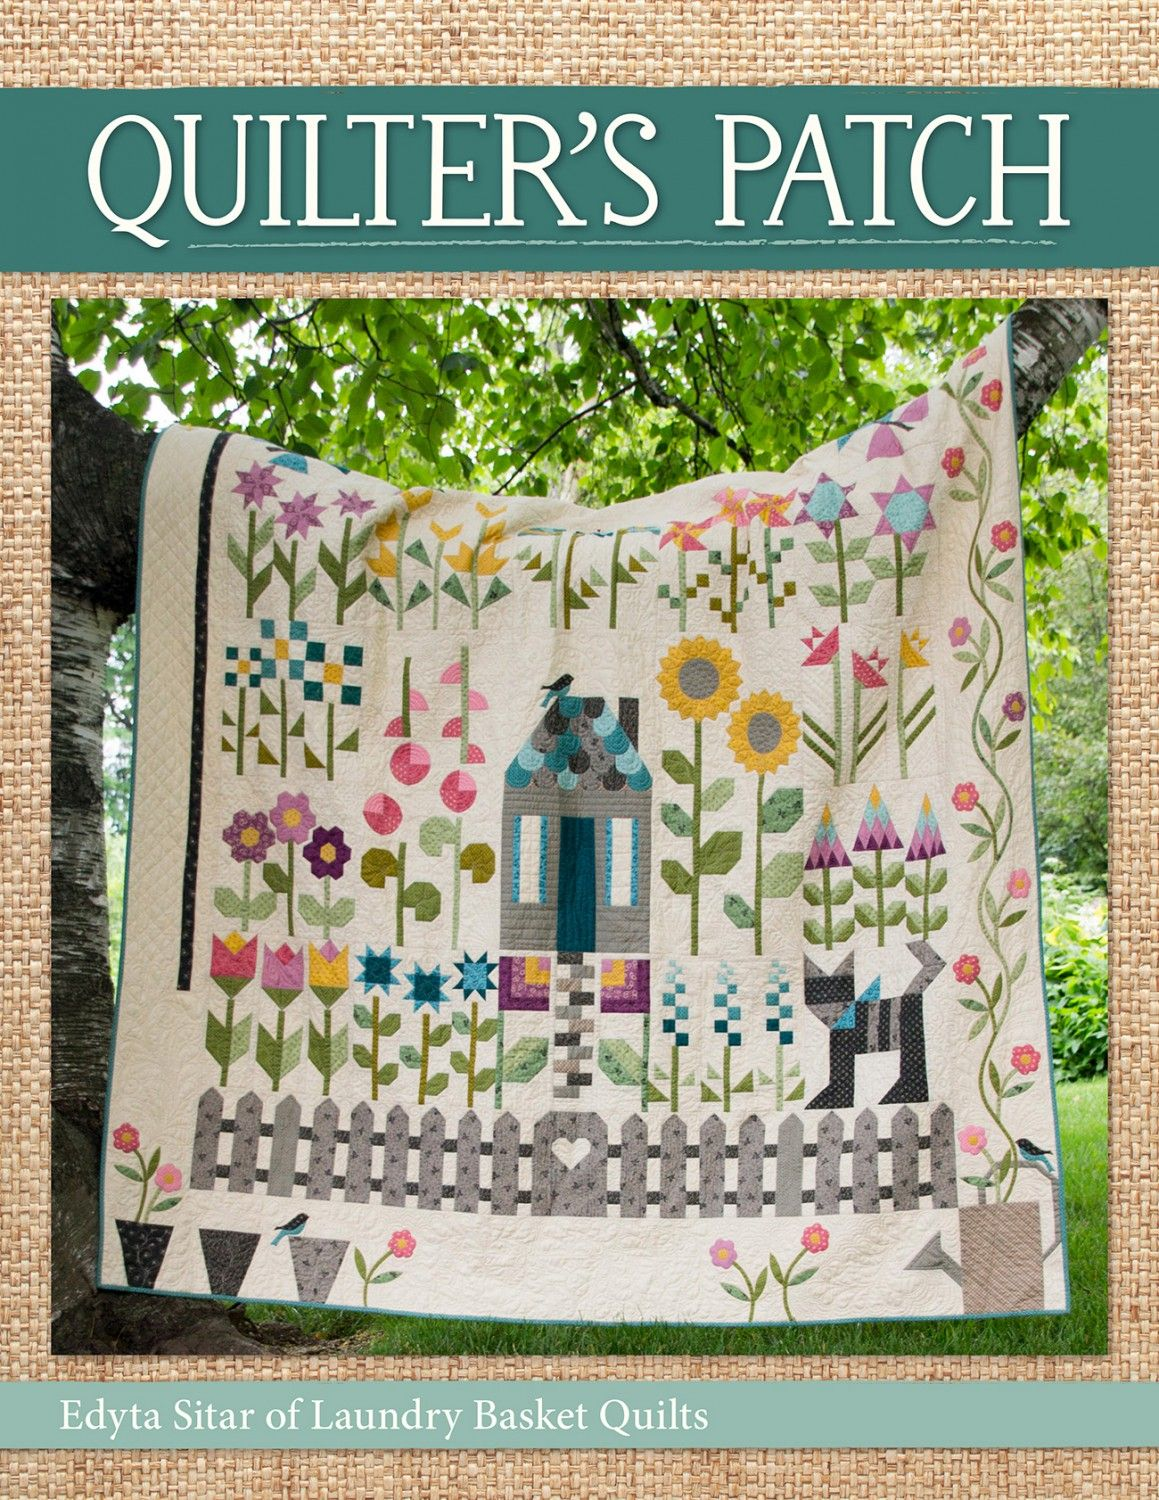 Quilters Patch Bom By Edyta Sitar Ise 914 Laundry Basket Quilts